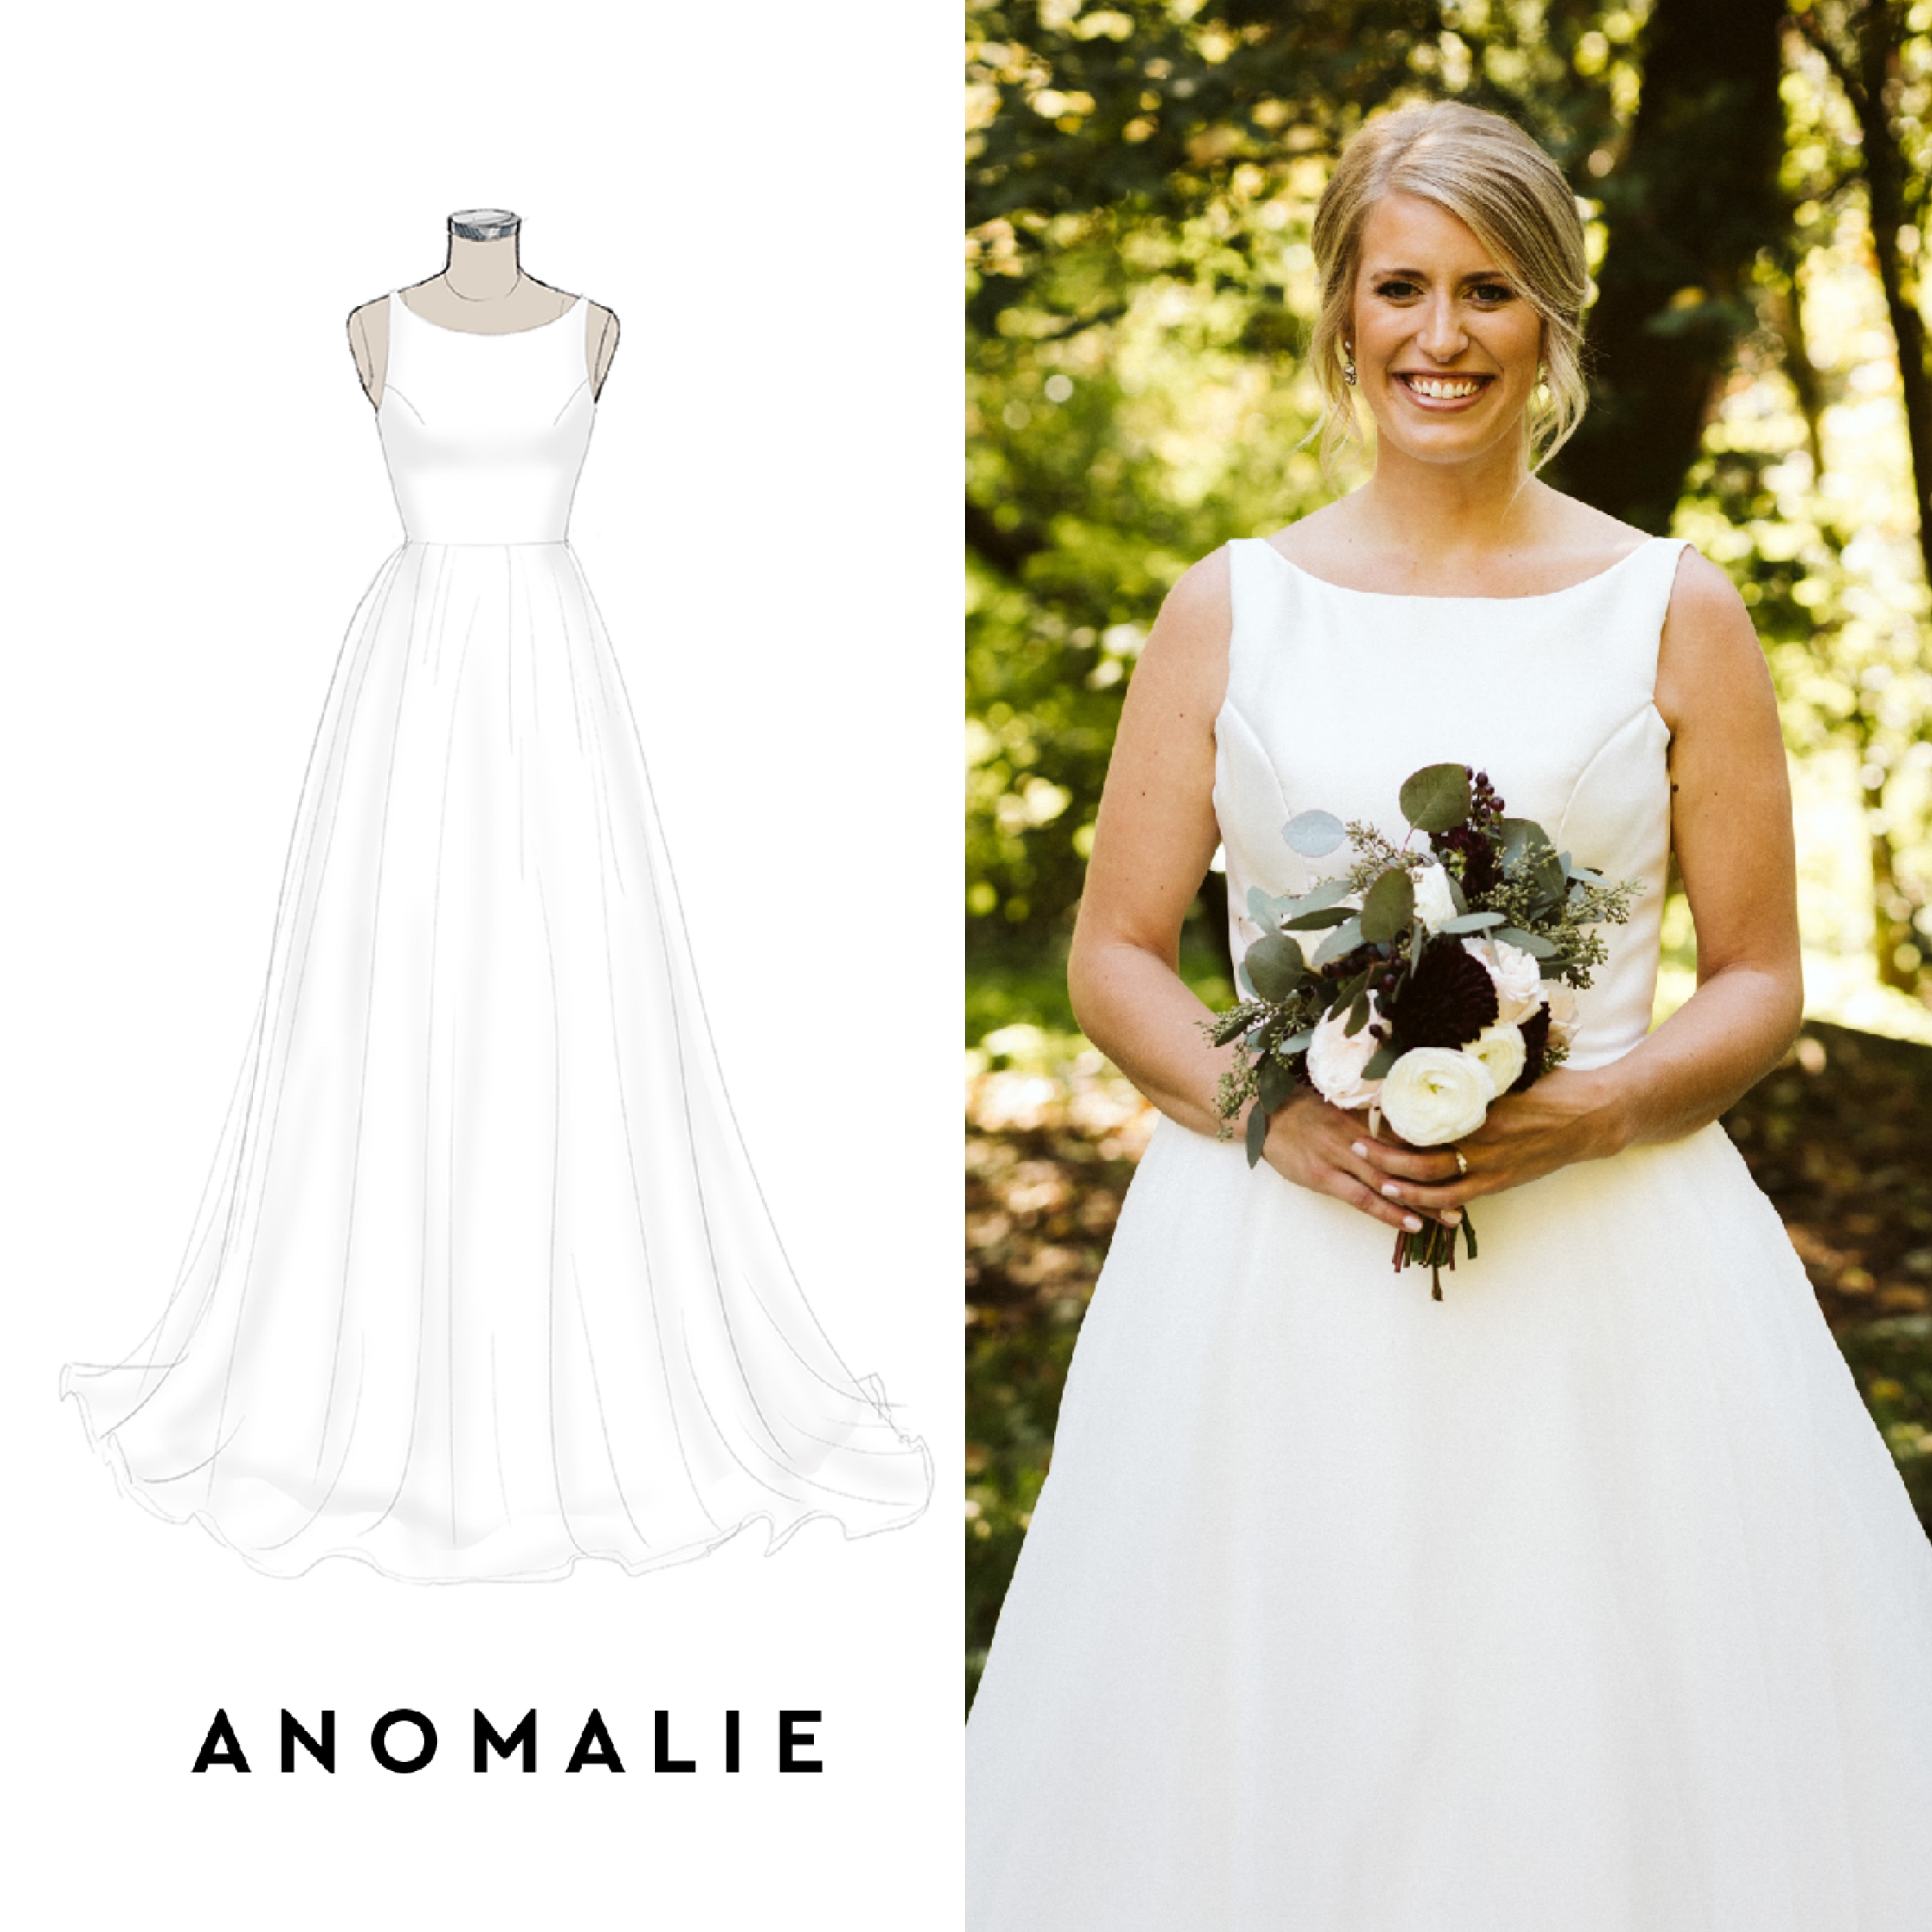 Anomalie online custom wedding dress, organza, silk mikado